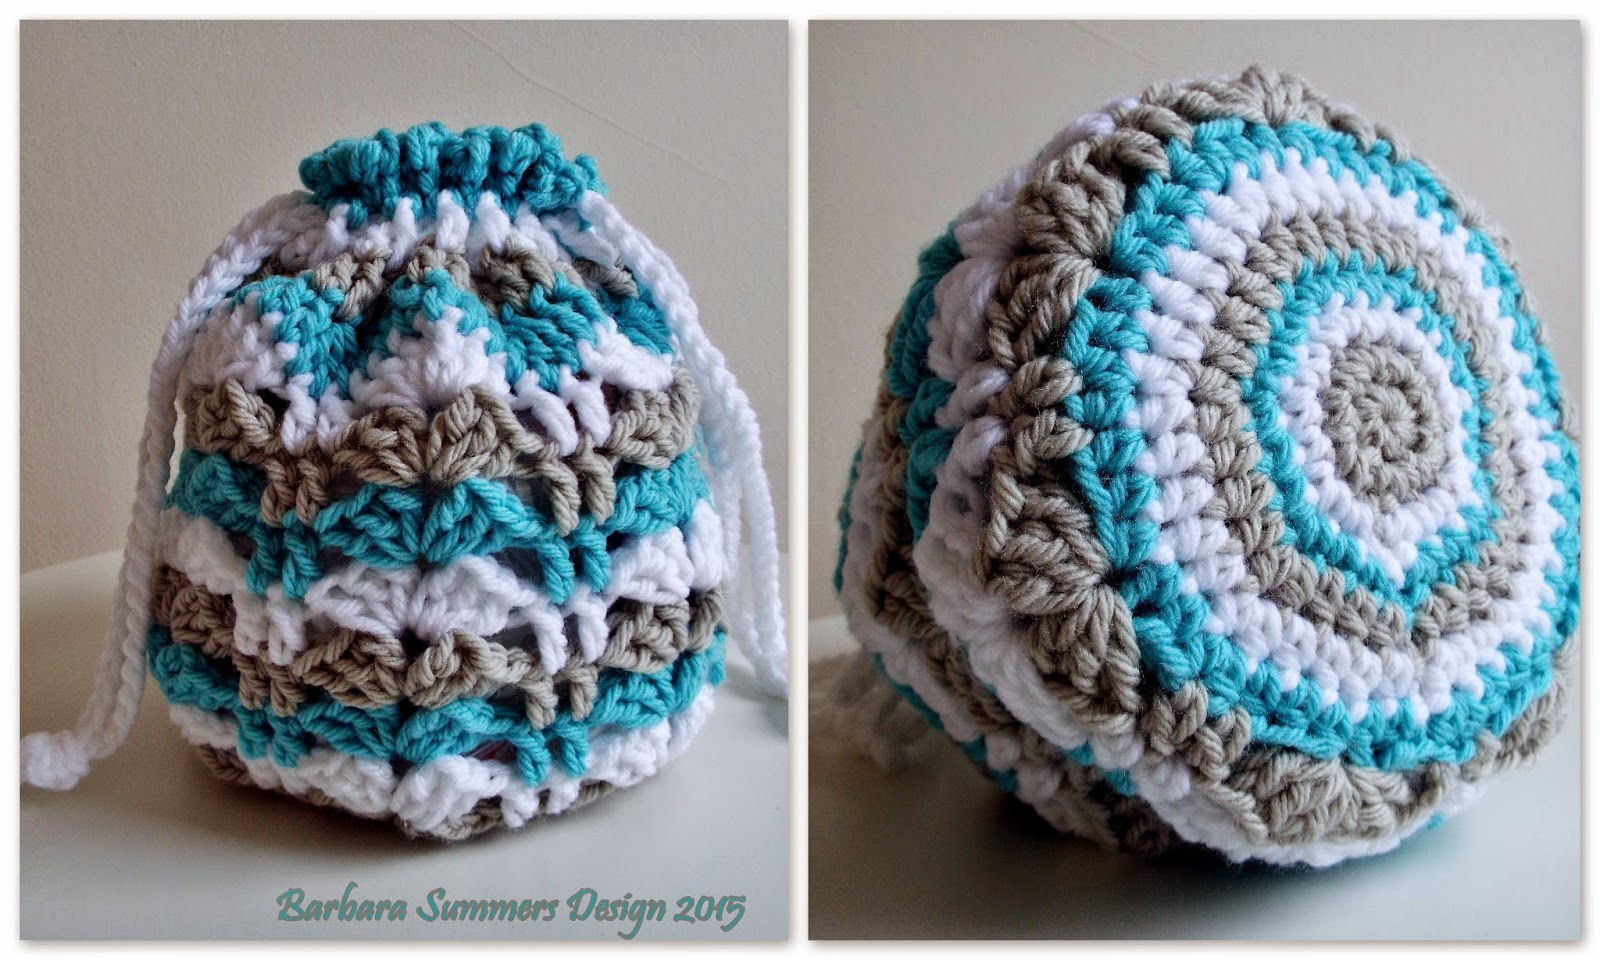 String Bag Crochet Pattern : crochet bag, circular bag, fans, posts, how to crochet fans, how to ...